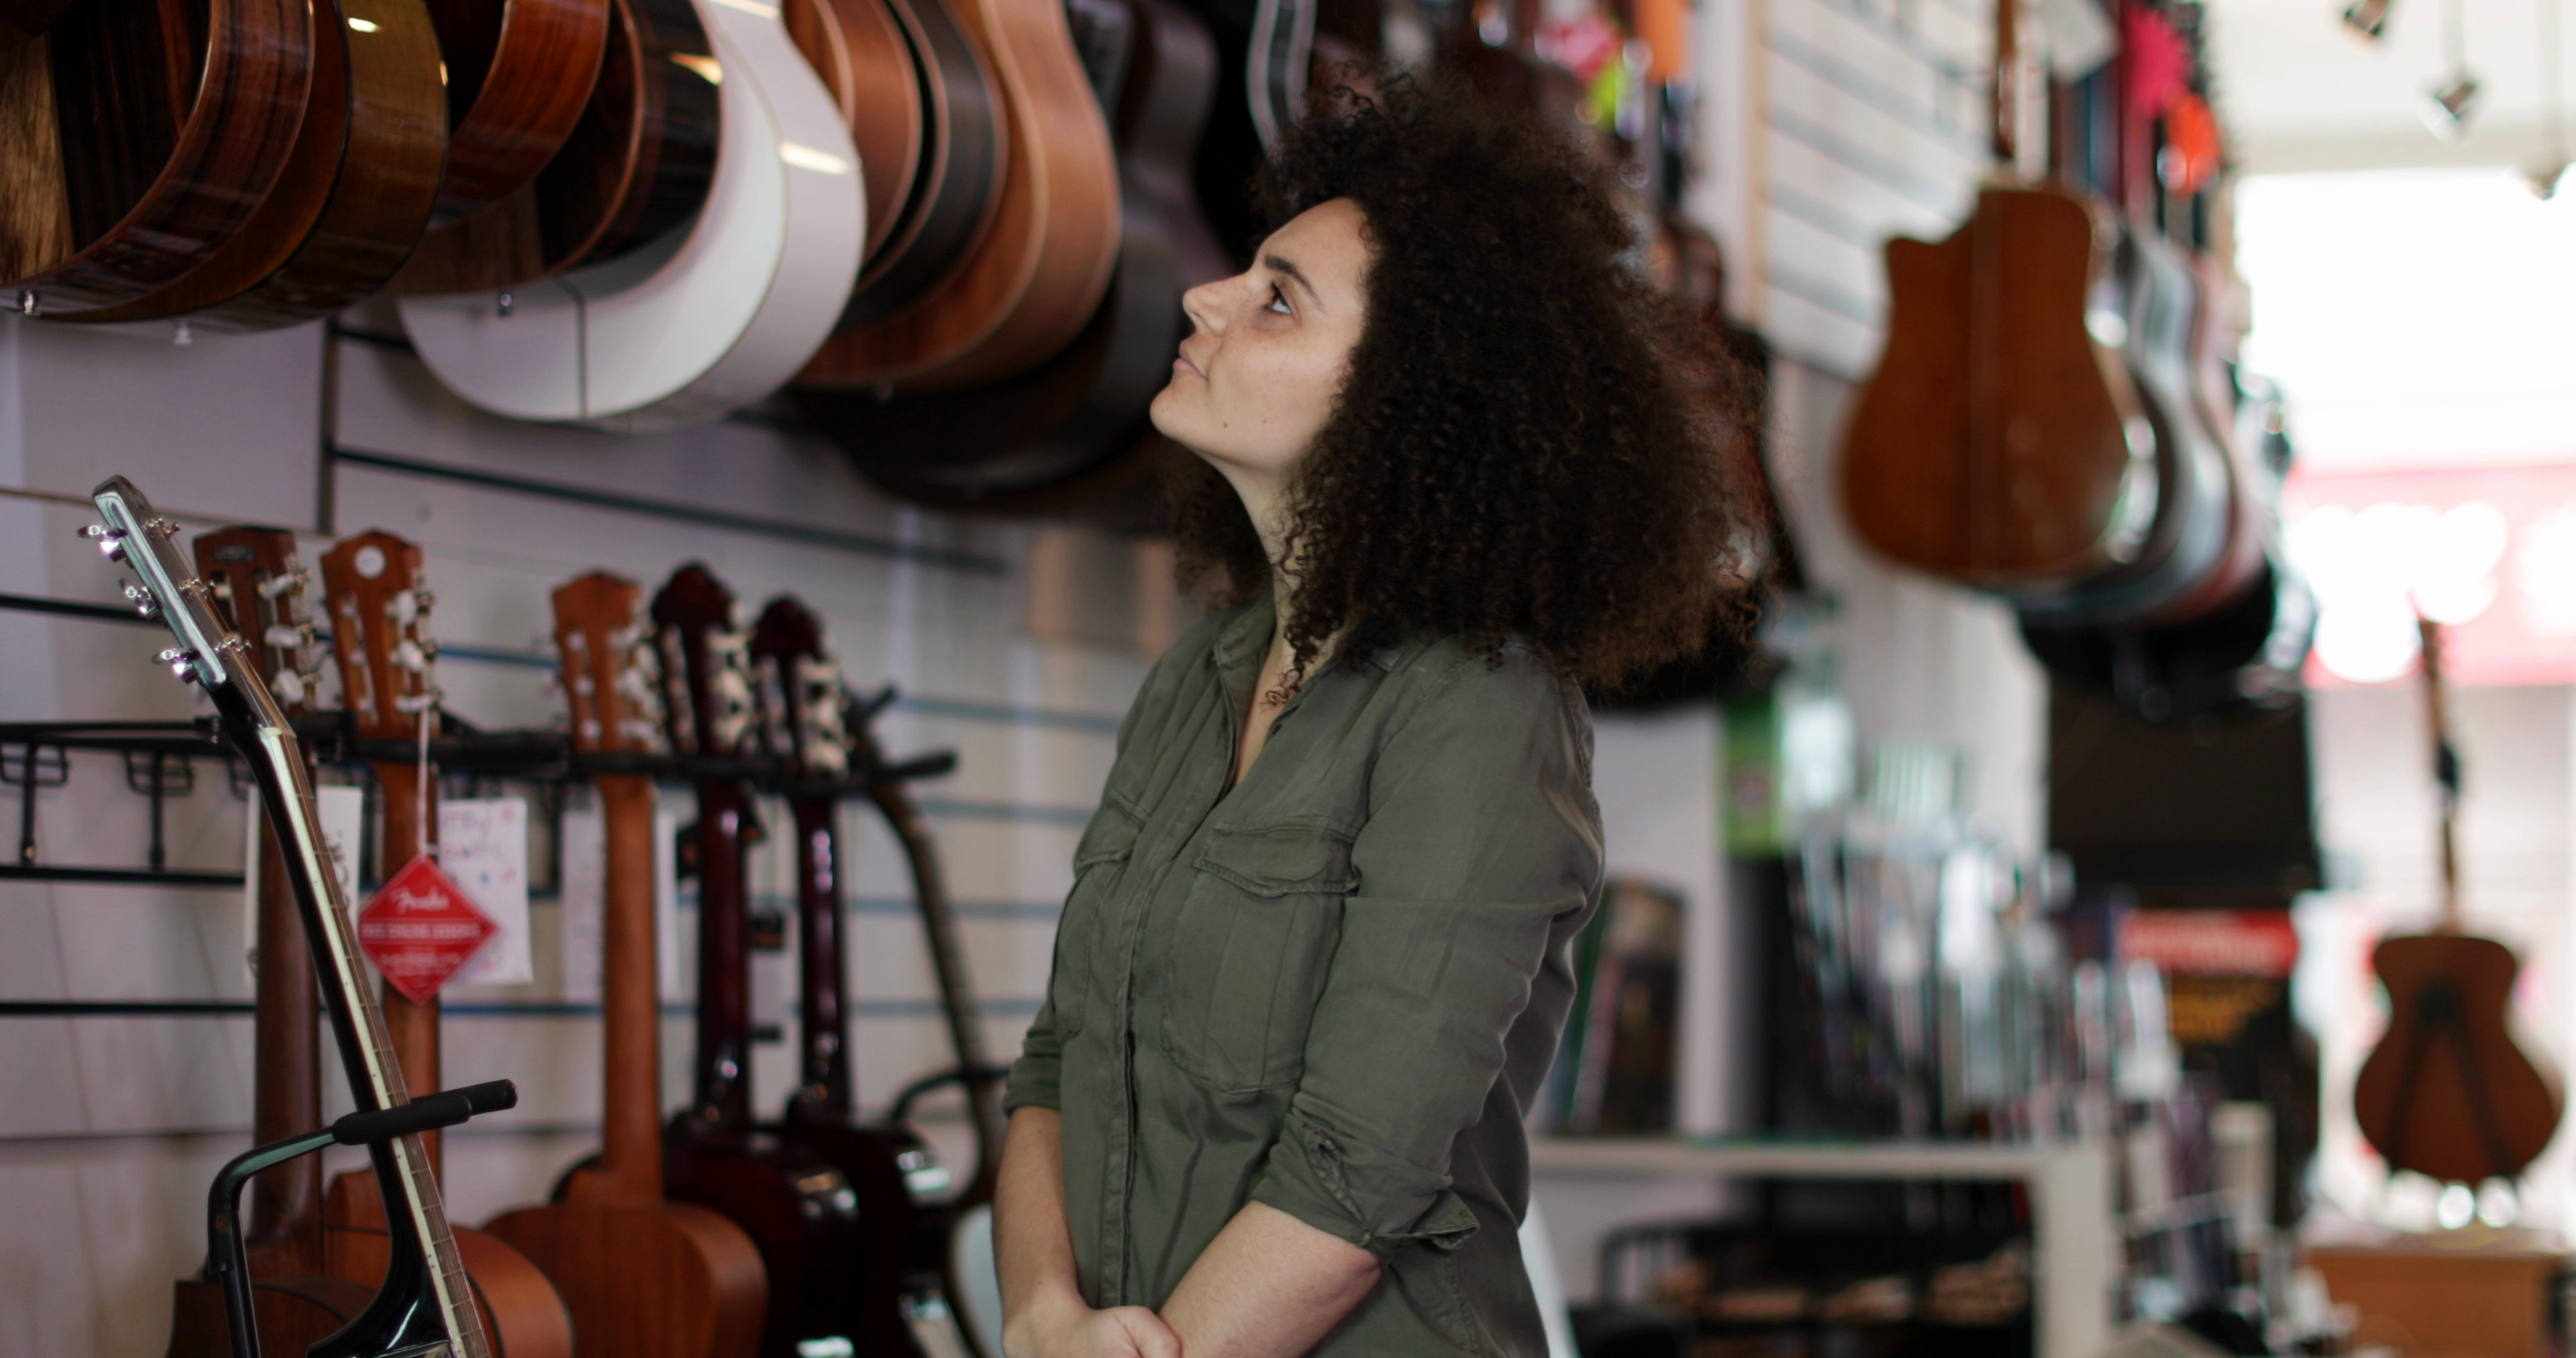 Portrait of a small business owner in a guitar store Stock Footage businessownerPortraitsmall